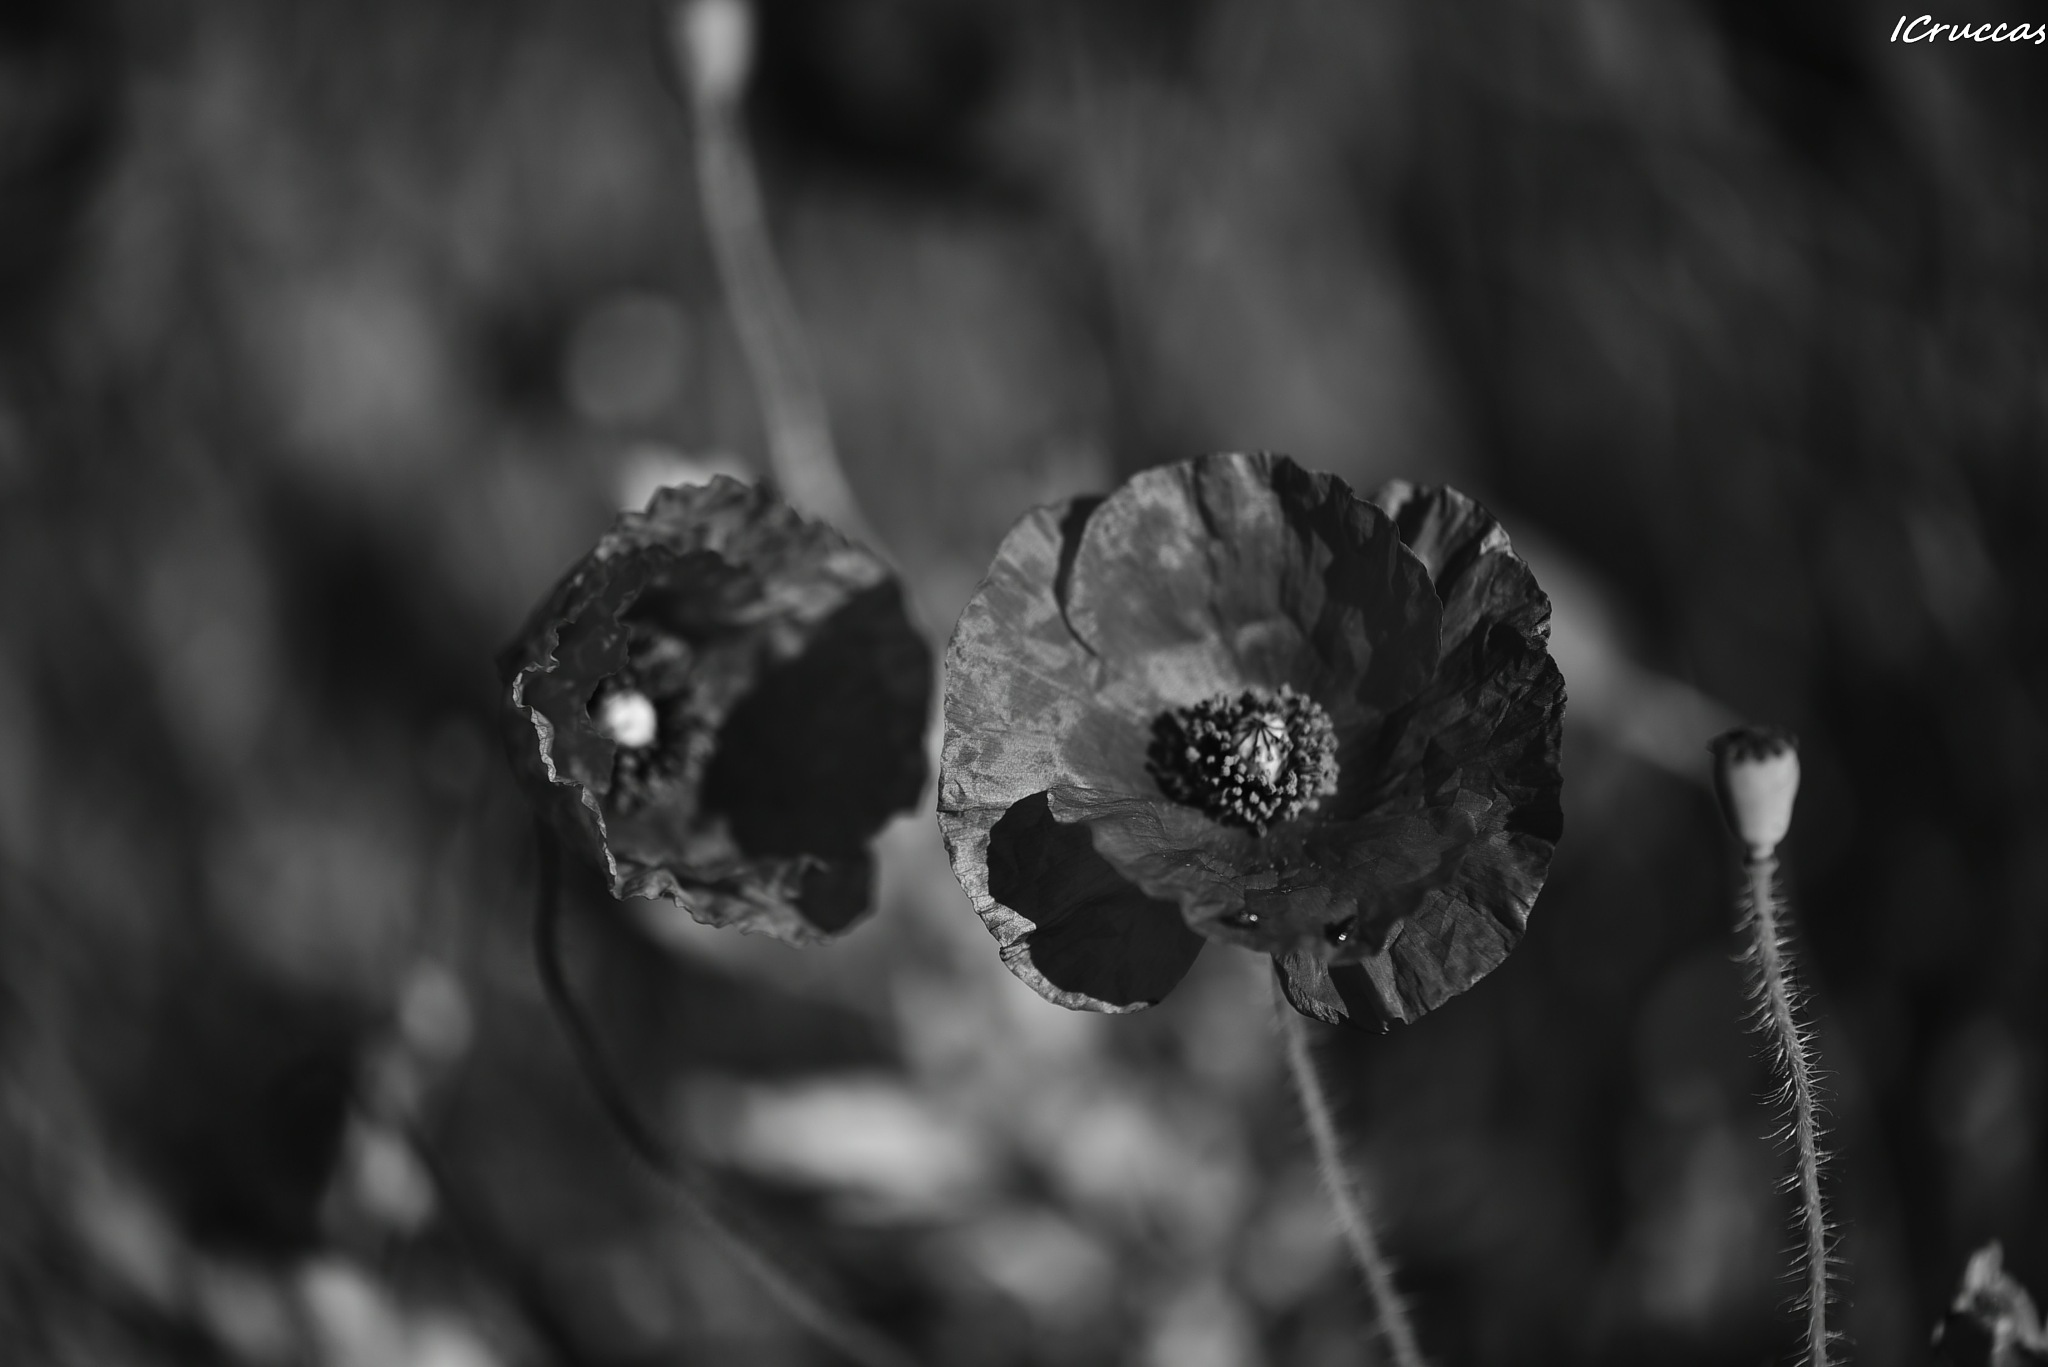 Black poppie by ignazio cruccas